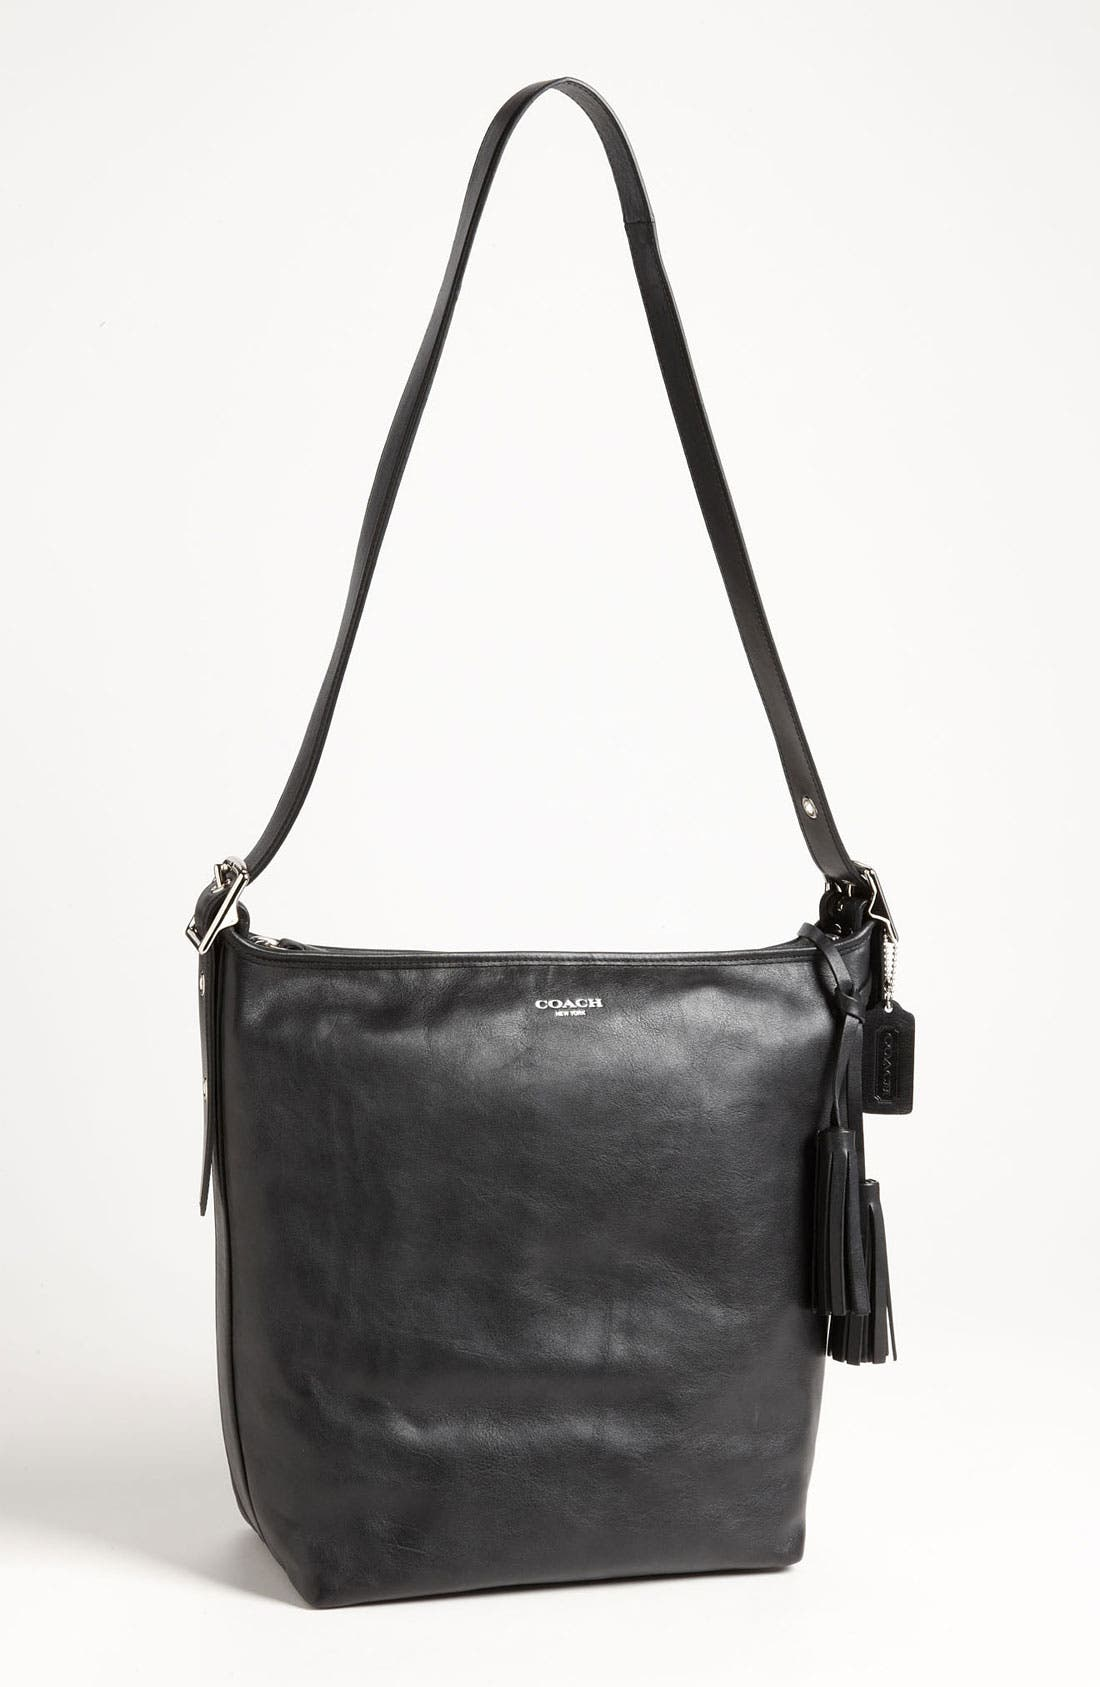 Main Image - COACH 'Legacy - Duffle' Tasseled Leather Shoulder Bag